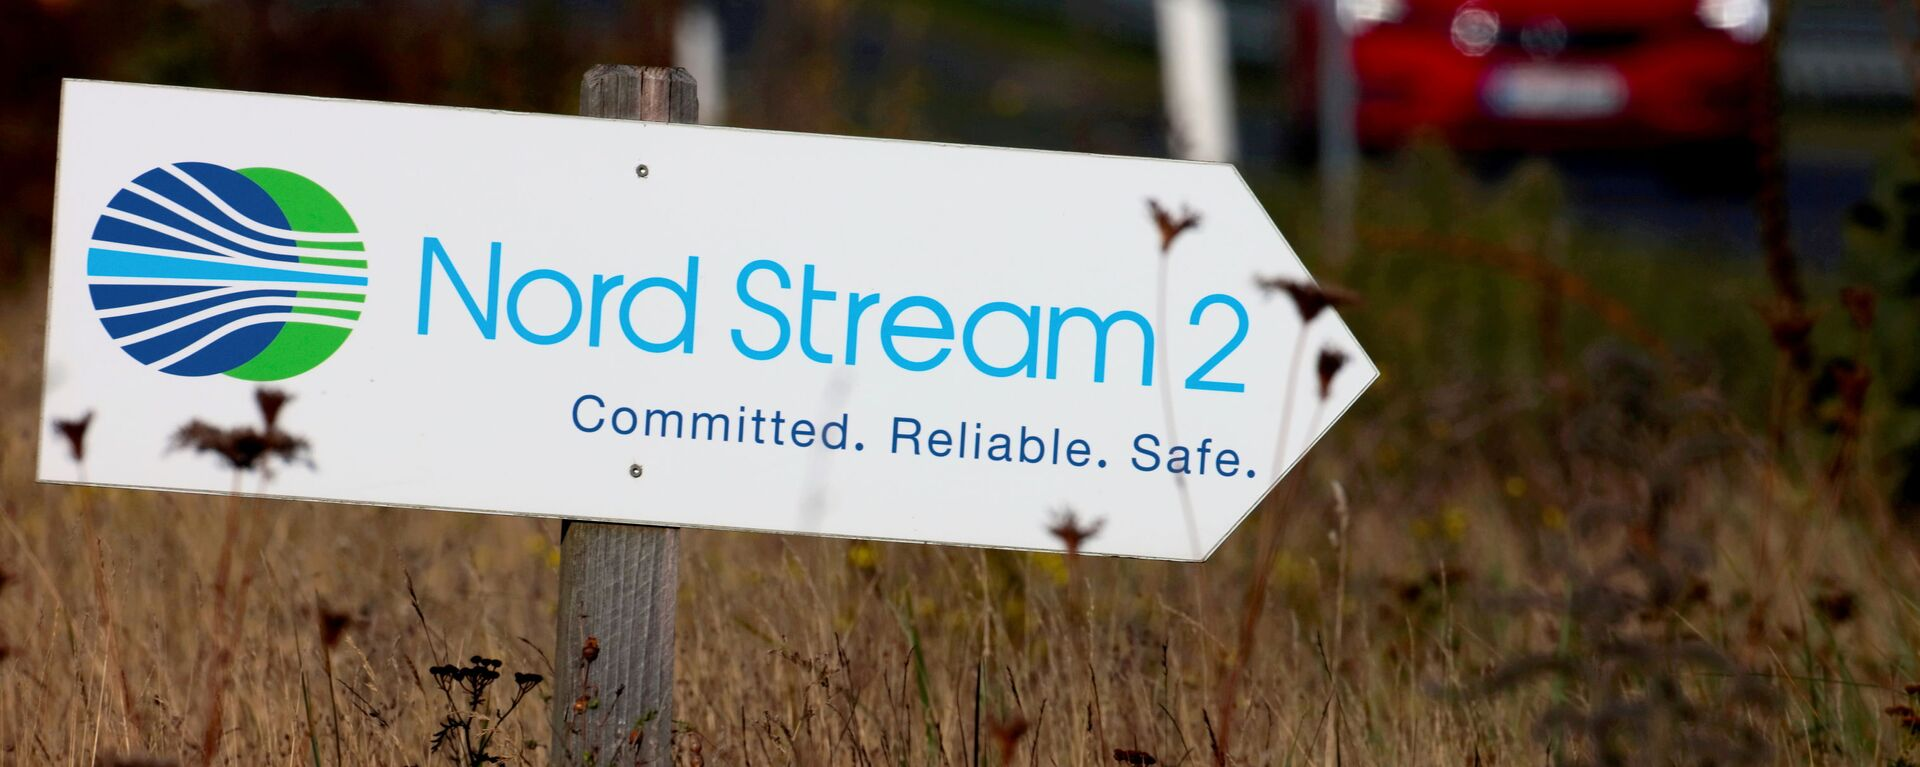 A road sign directs traffic towards the Nord Stream 2 gas line landfall facility entrance in Lubmin, Germany, September 10, 2020.  - Sputnik International, 1920, 23.07.2021